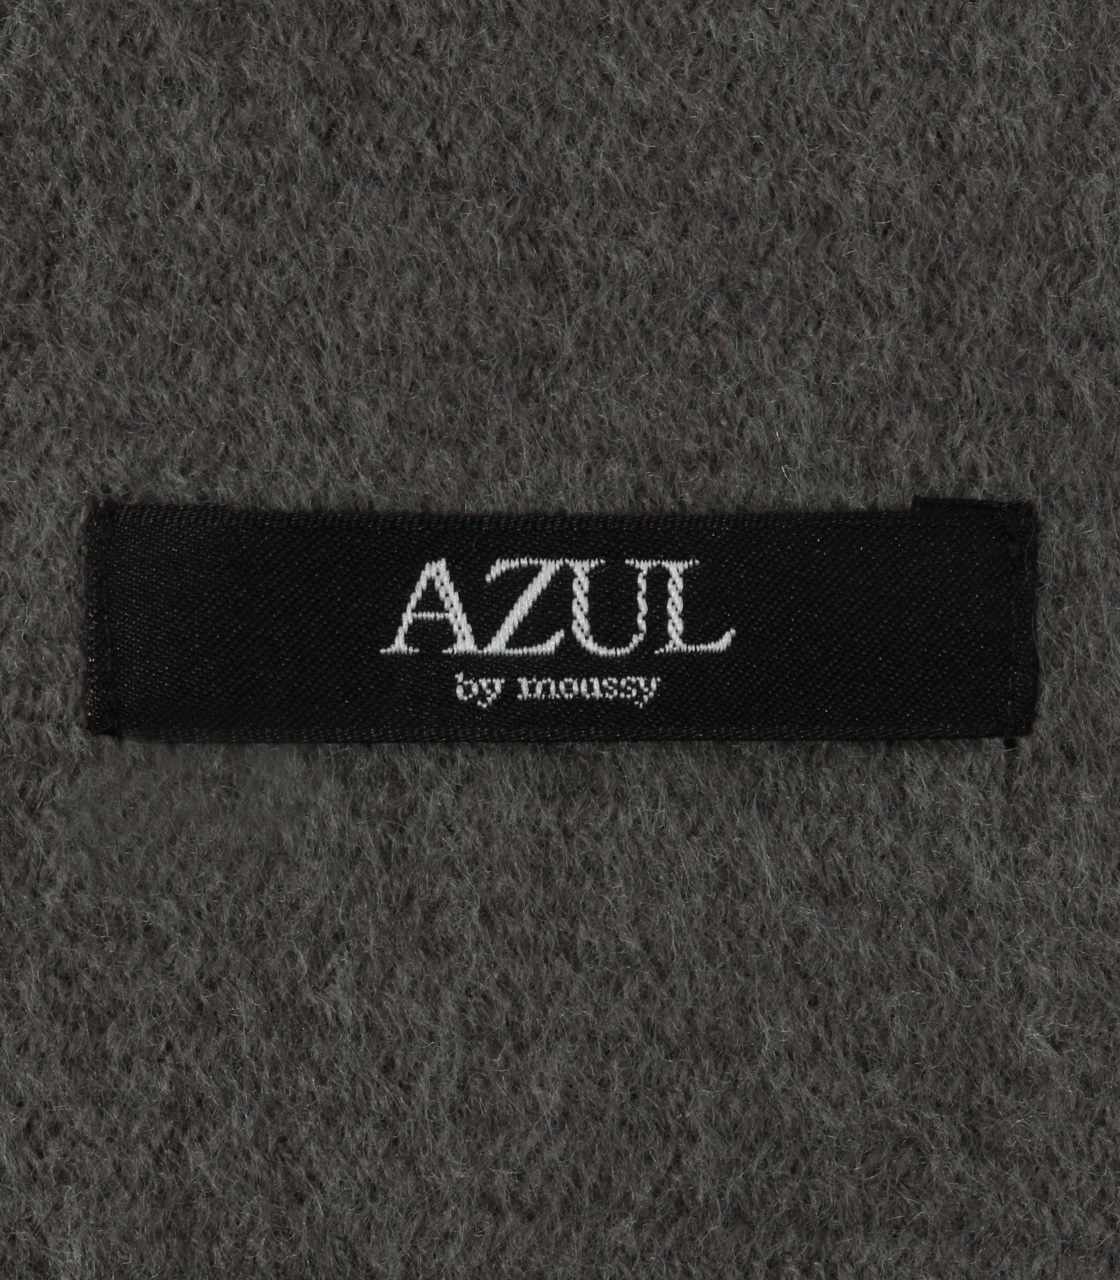 【AZUL BY MOUSSY】起毛ニットマフラー 詳細画像 GRY 7